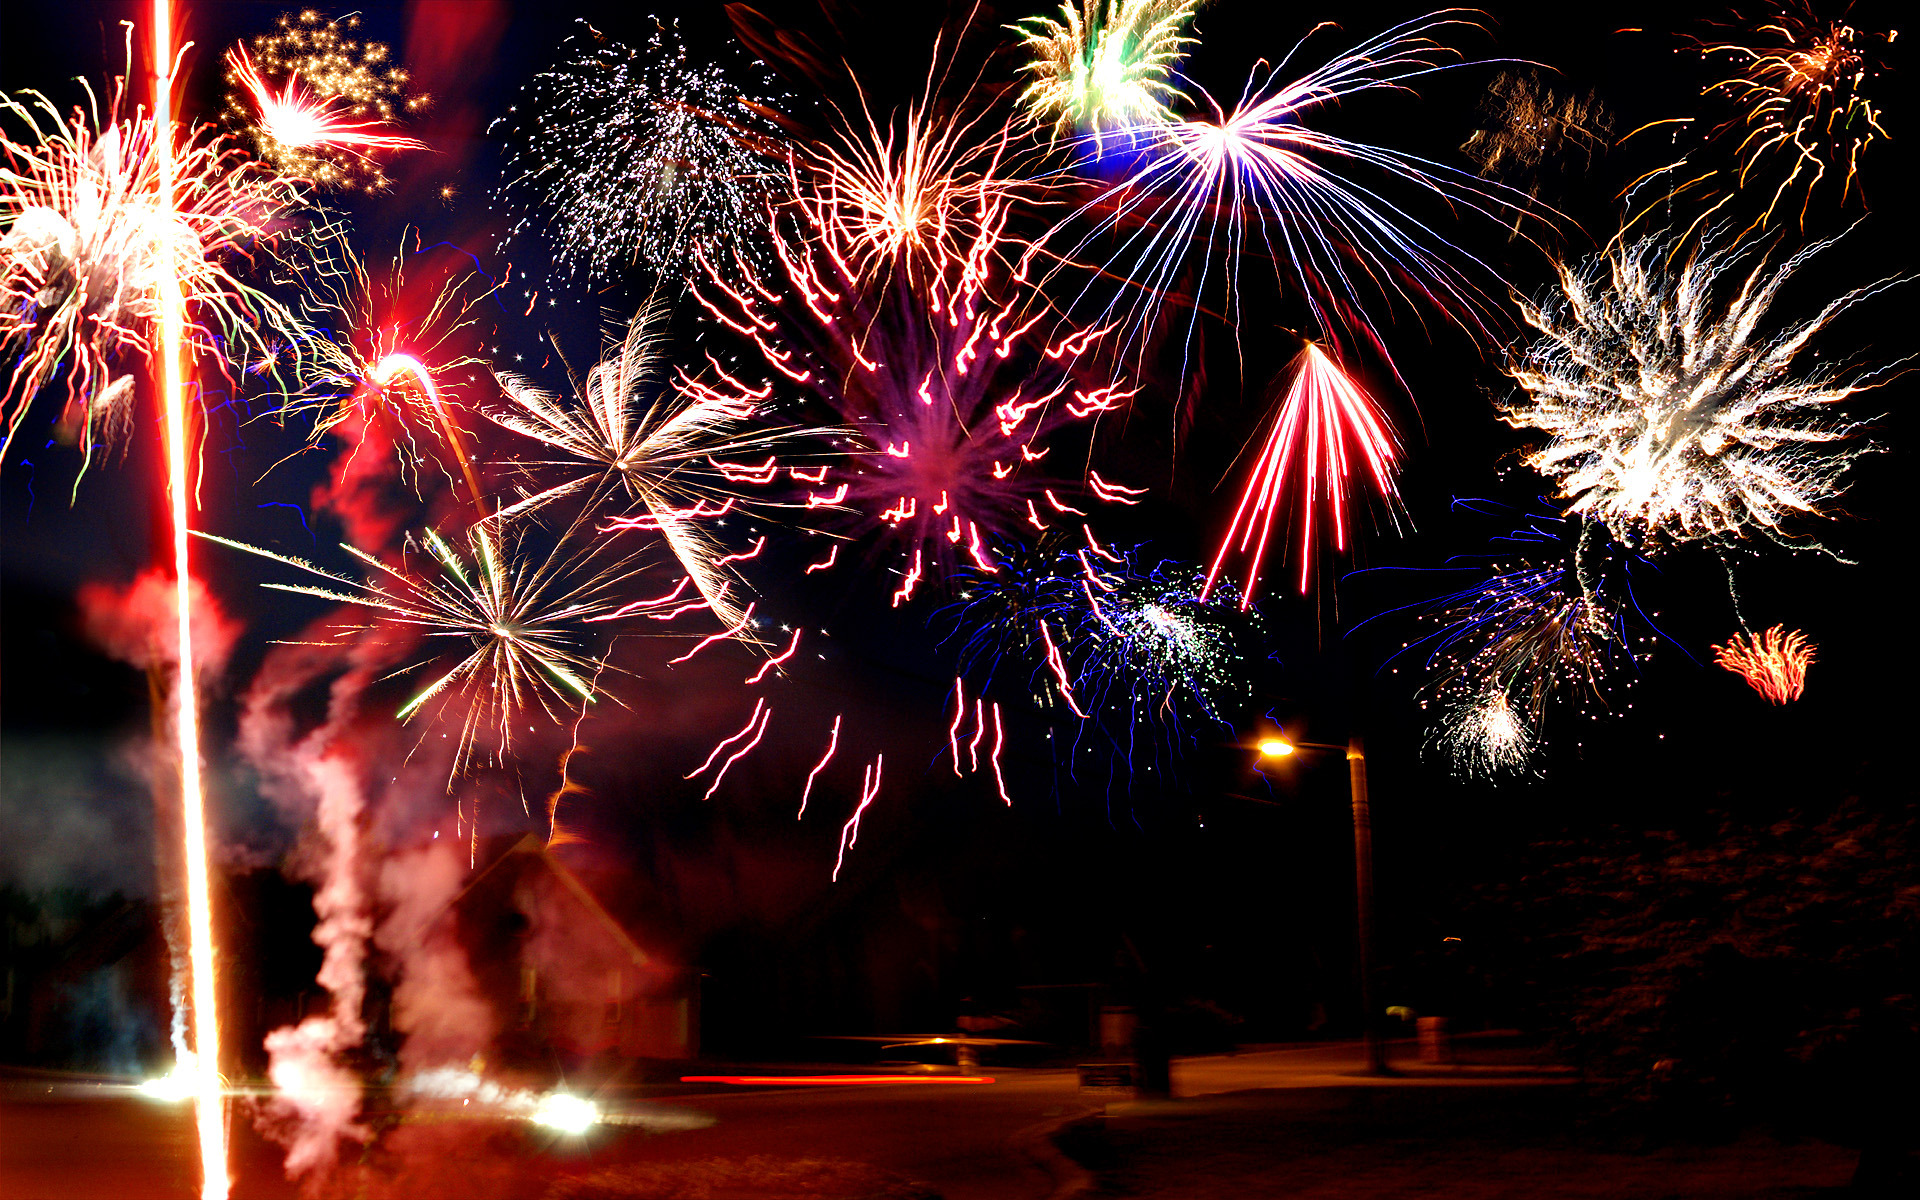 fireworks-photography-hd-wallpaper-1920x1200-283